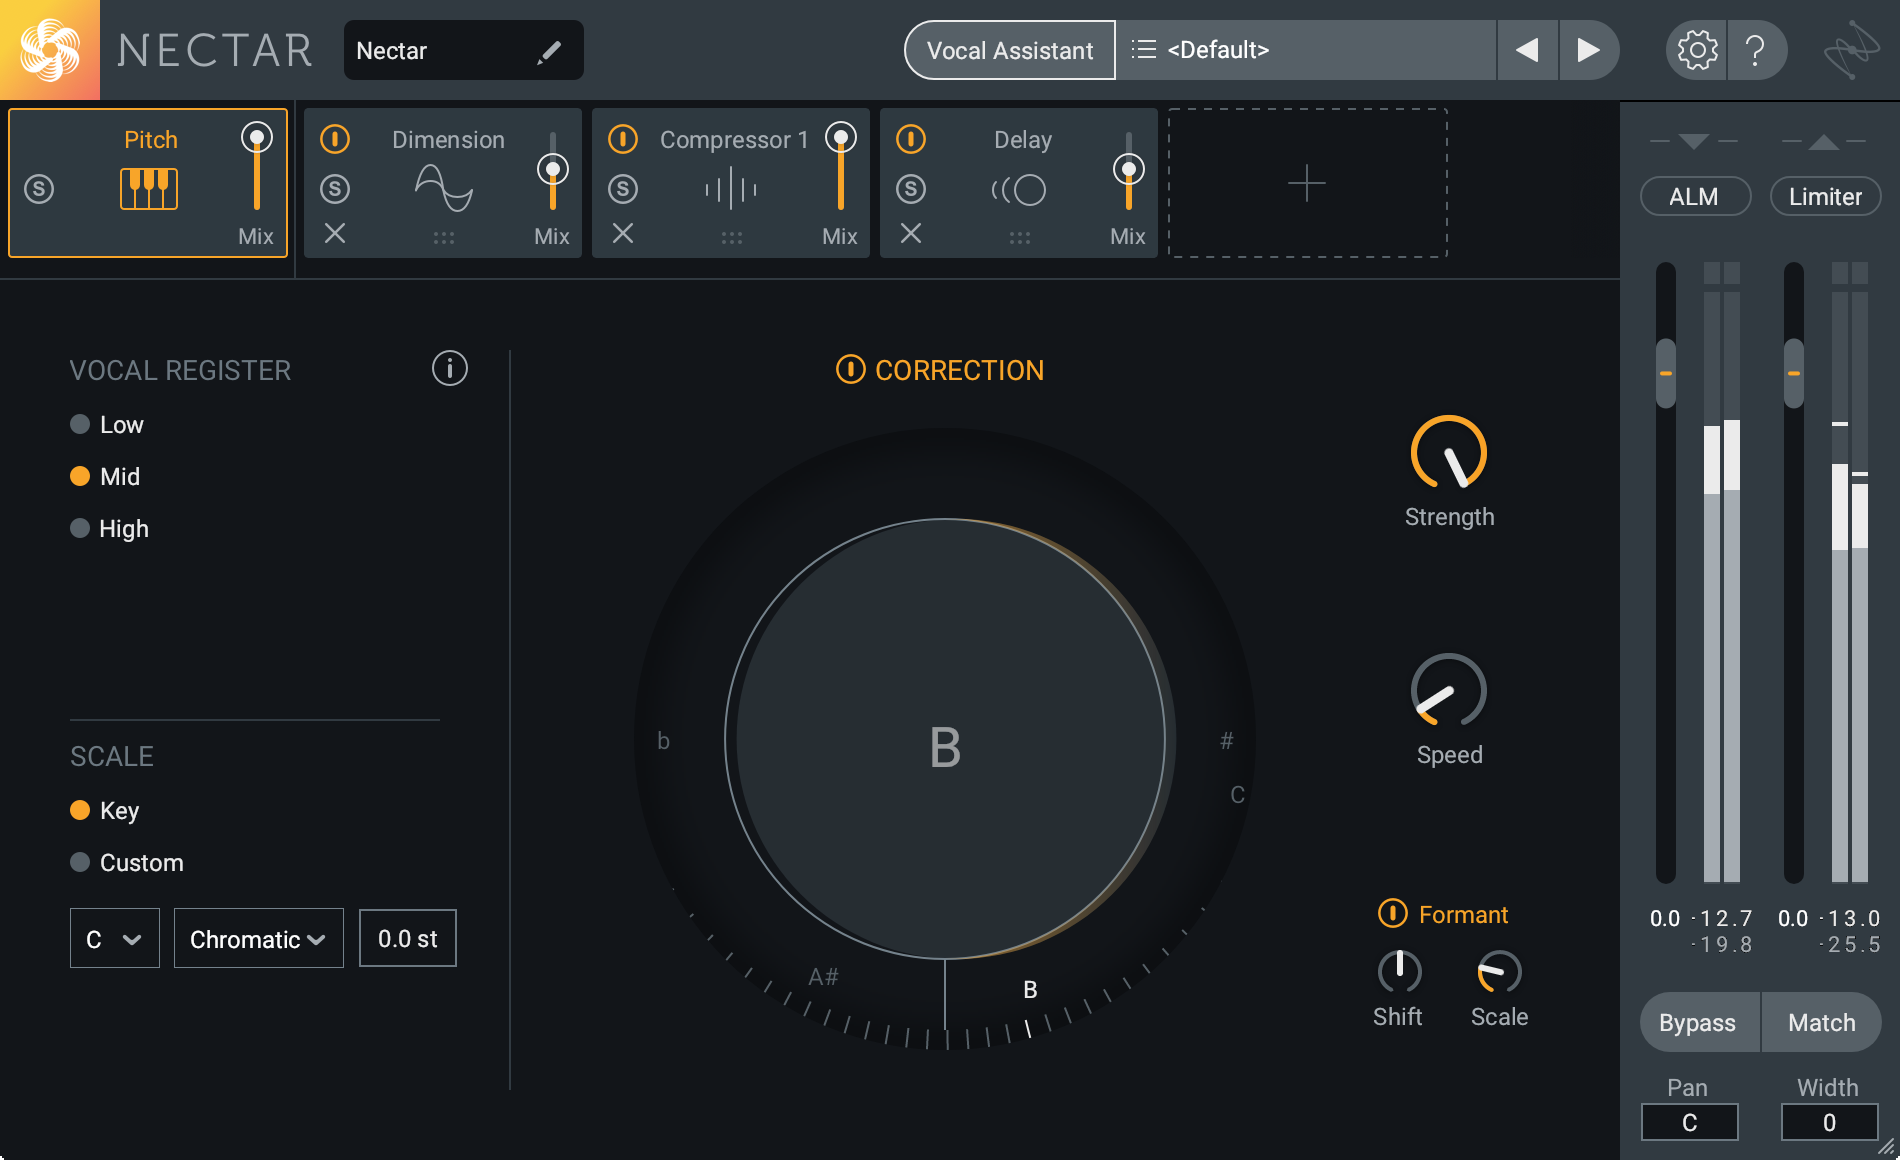 7 Ways to Get Unusual Vocal Effects with iZotope Plug-ins